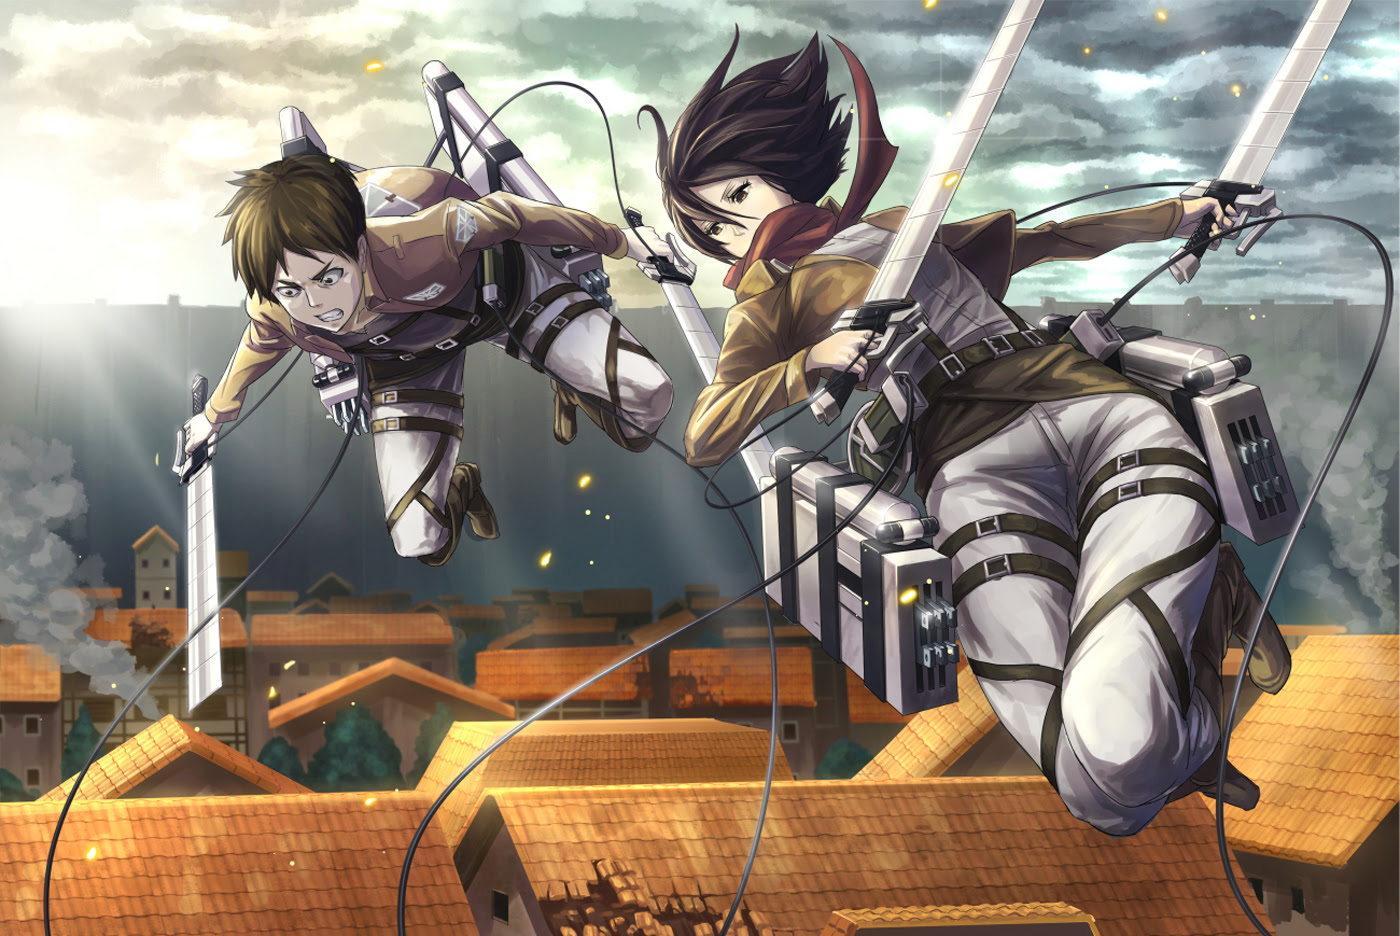 Aot Wallpapers Shingeki No Kyojin Attack On Titan Photo 36001018 Fanpop